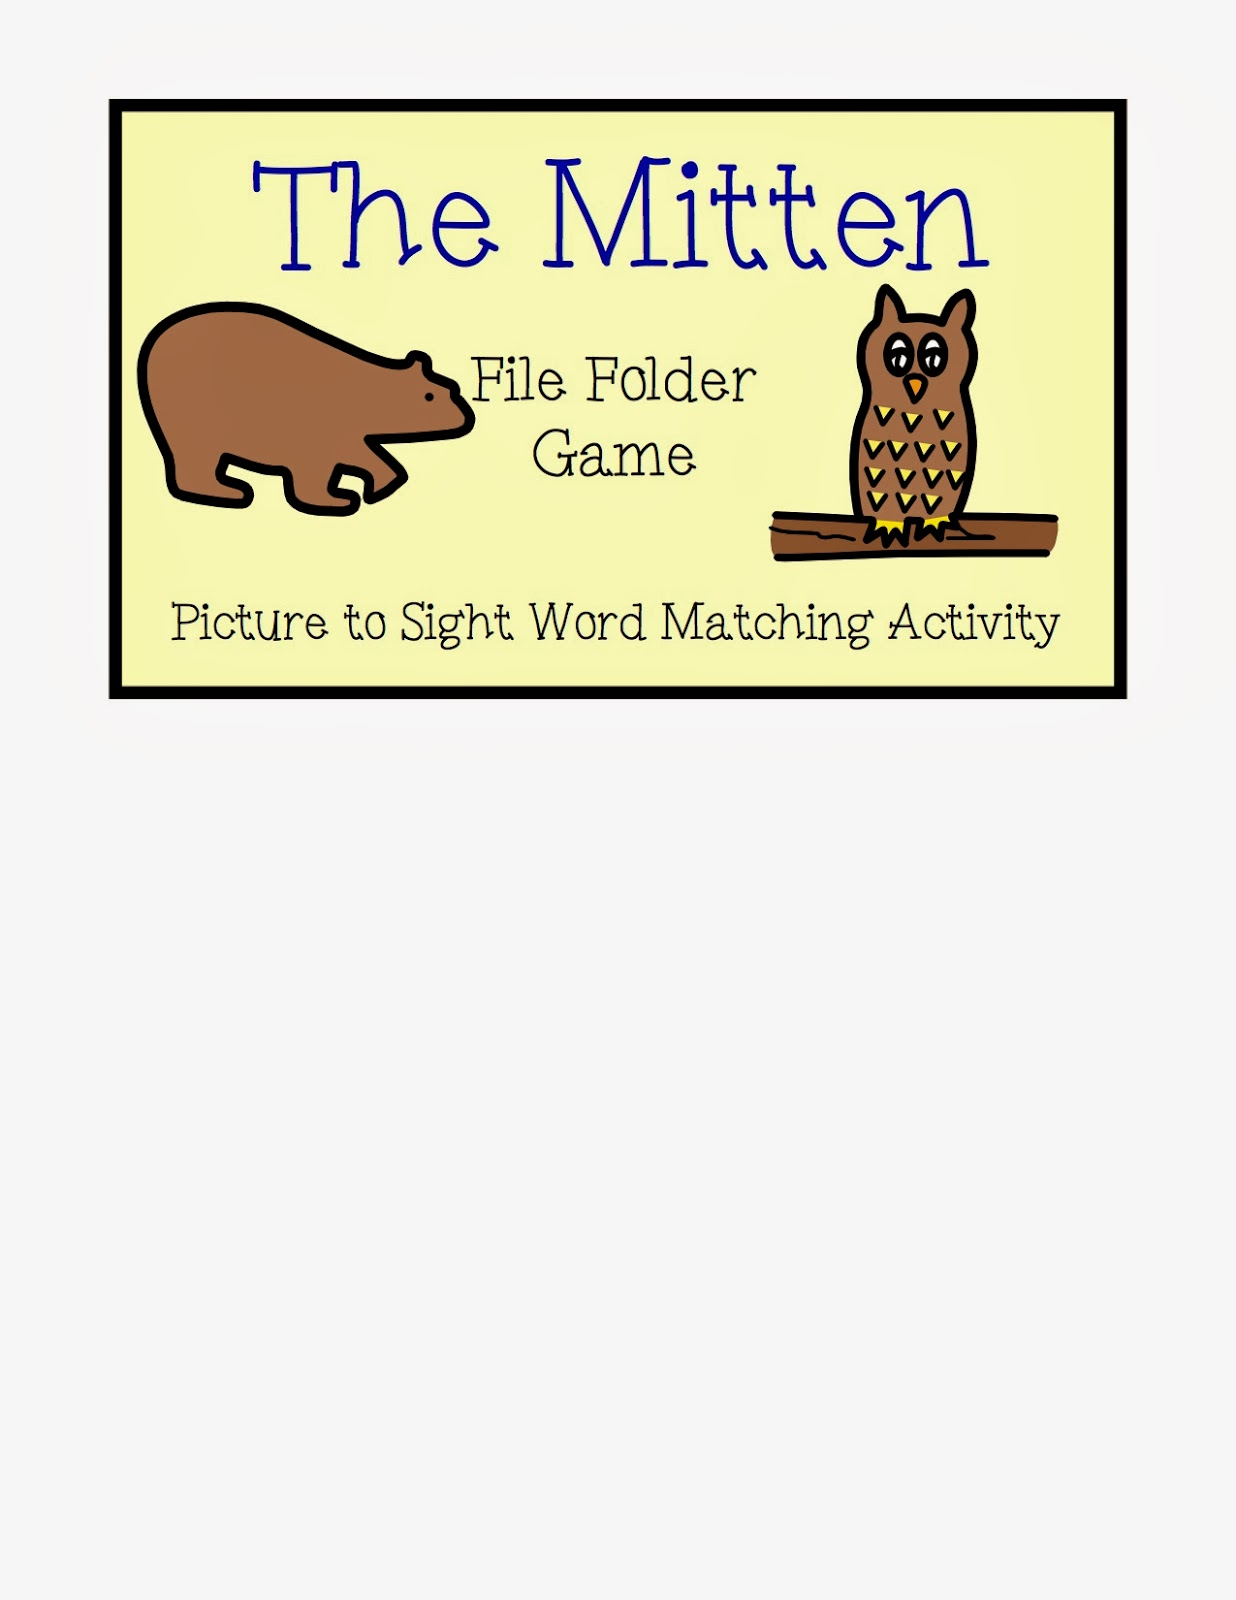 Best Of The Mitten By Jan Brett